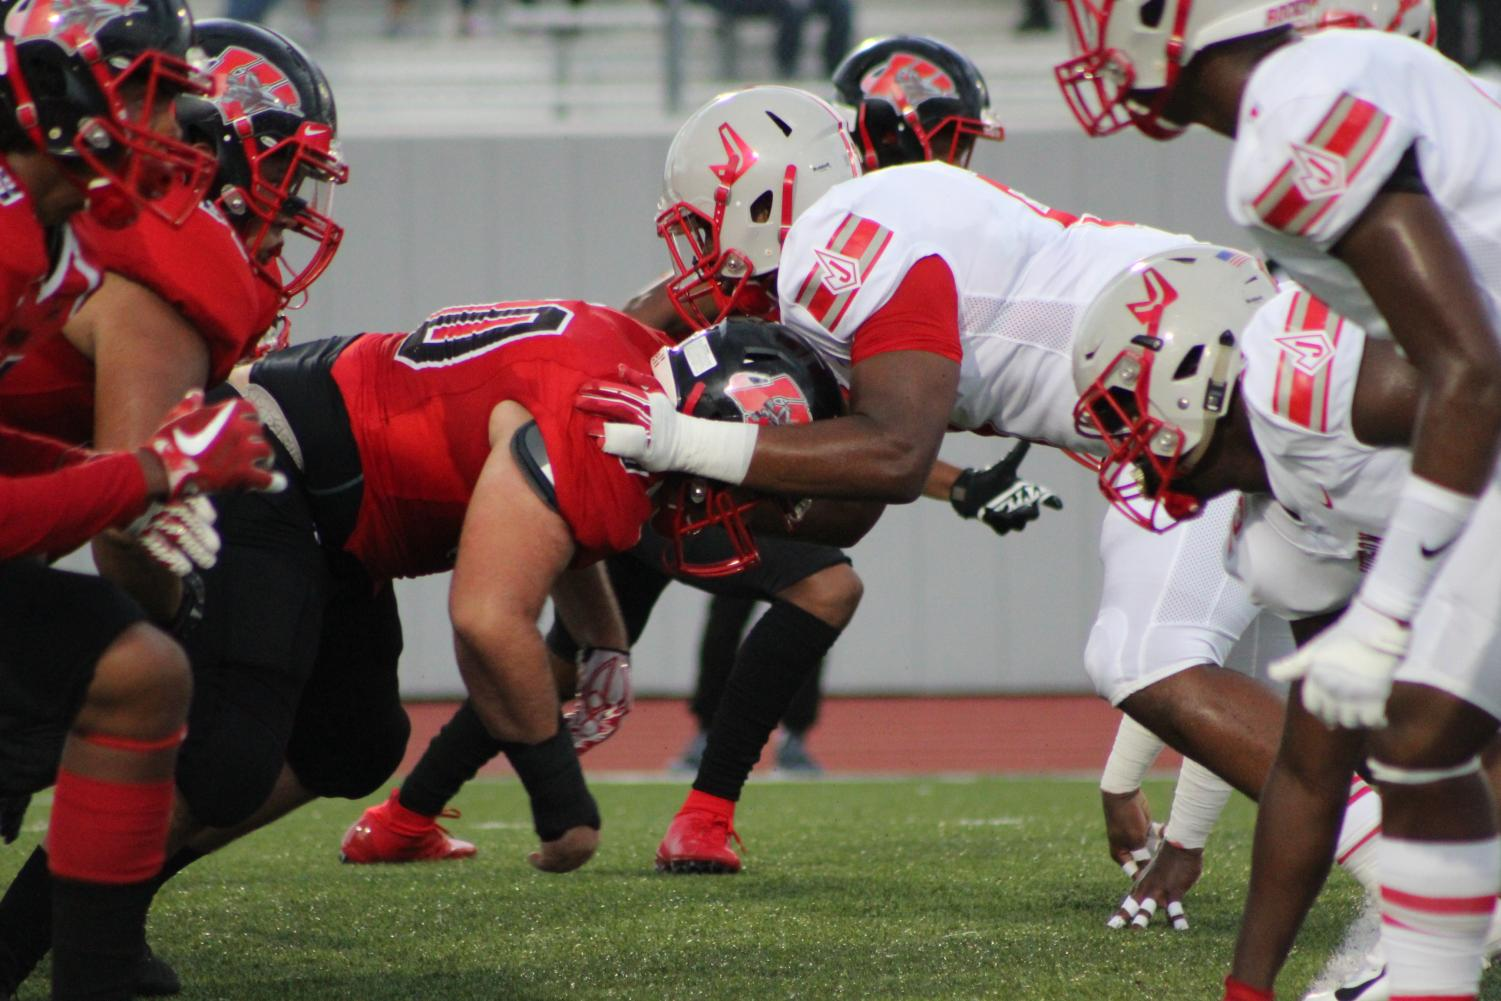 Judson defensive tackle attempts to move past the offensive line in attempts for a quick sack/tackle. Rockets win 35-27 at the annual Hammer Bowl game.